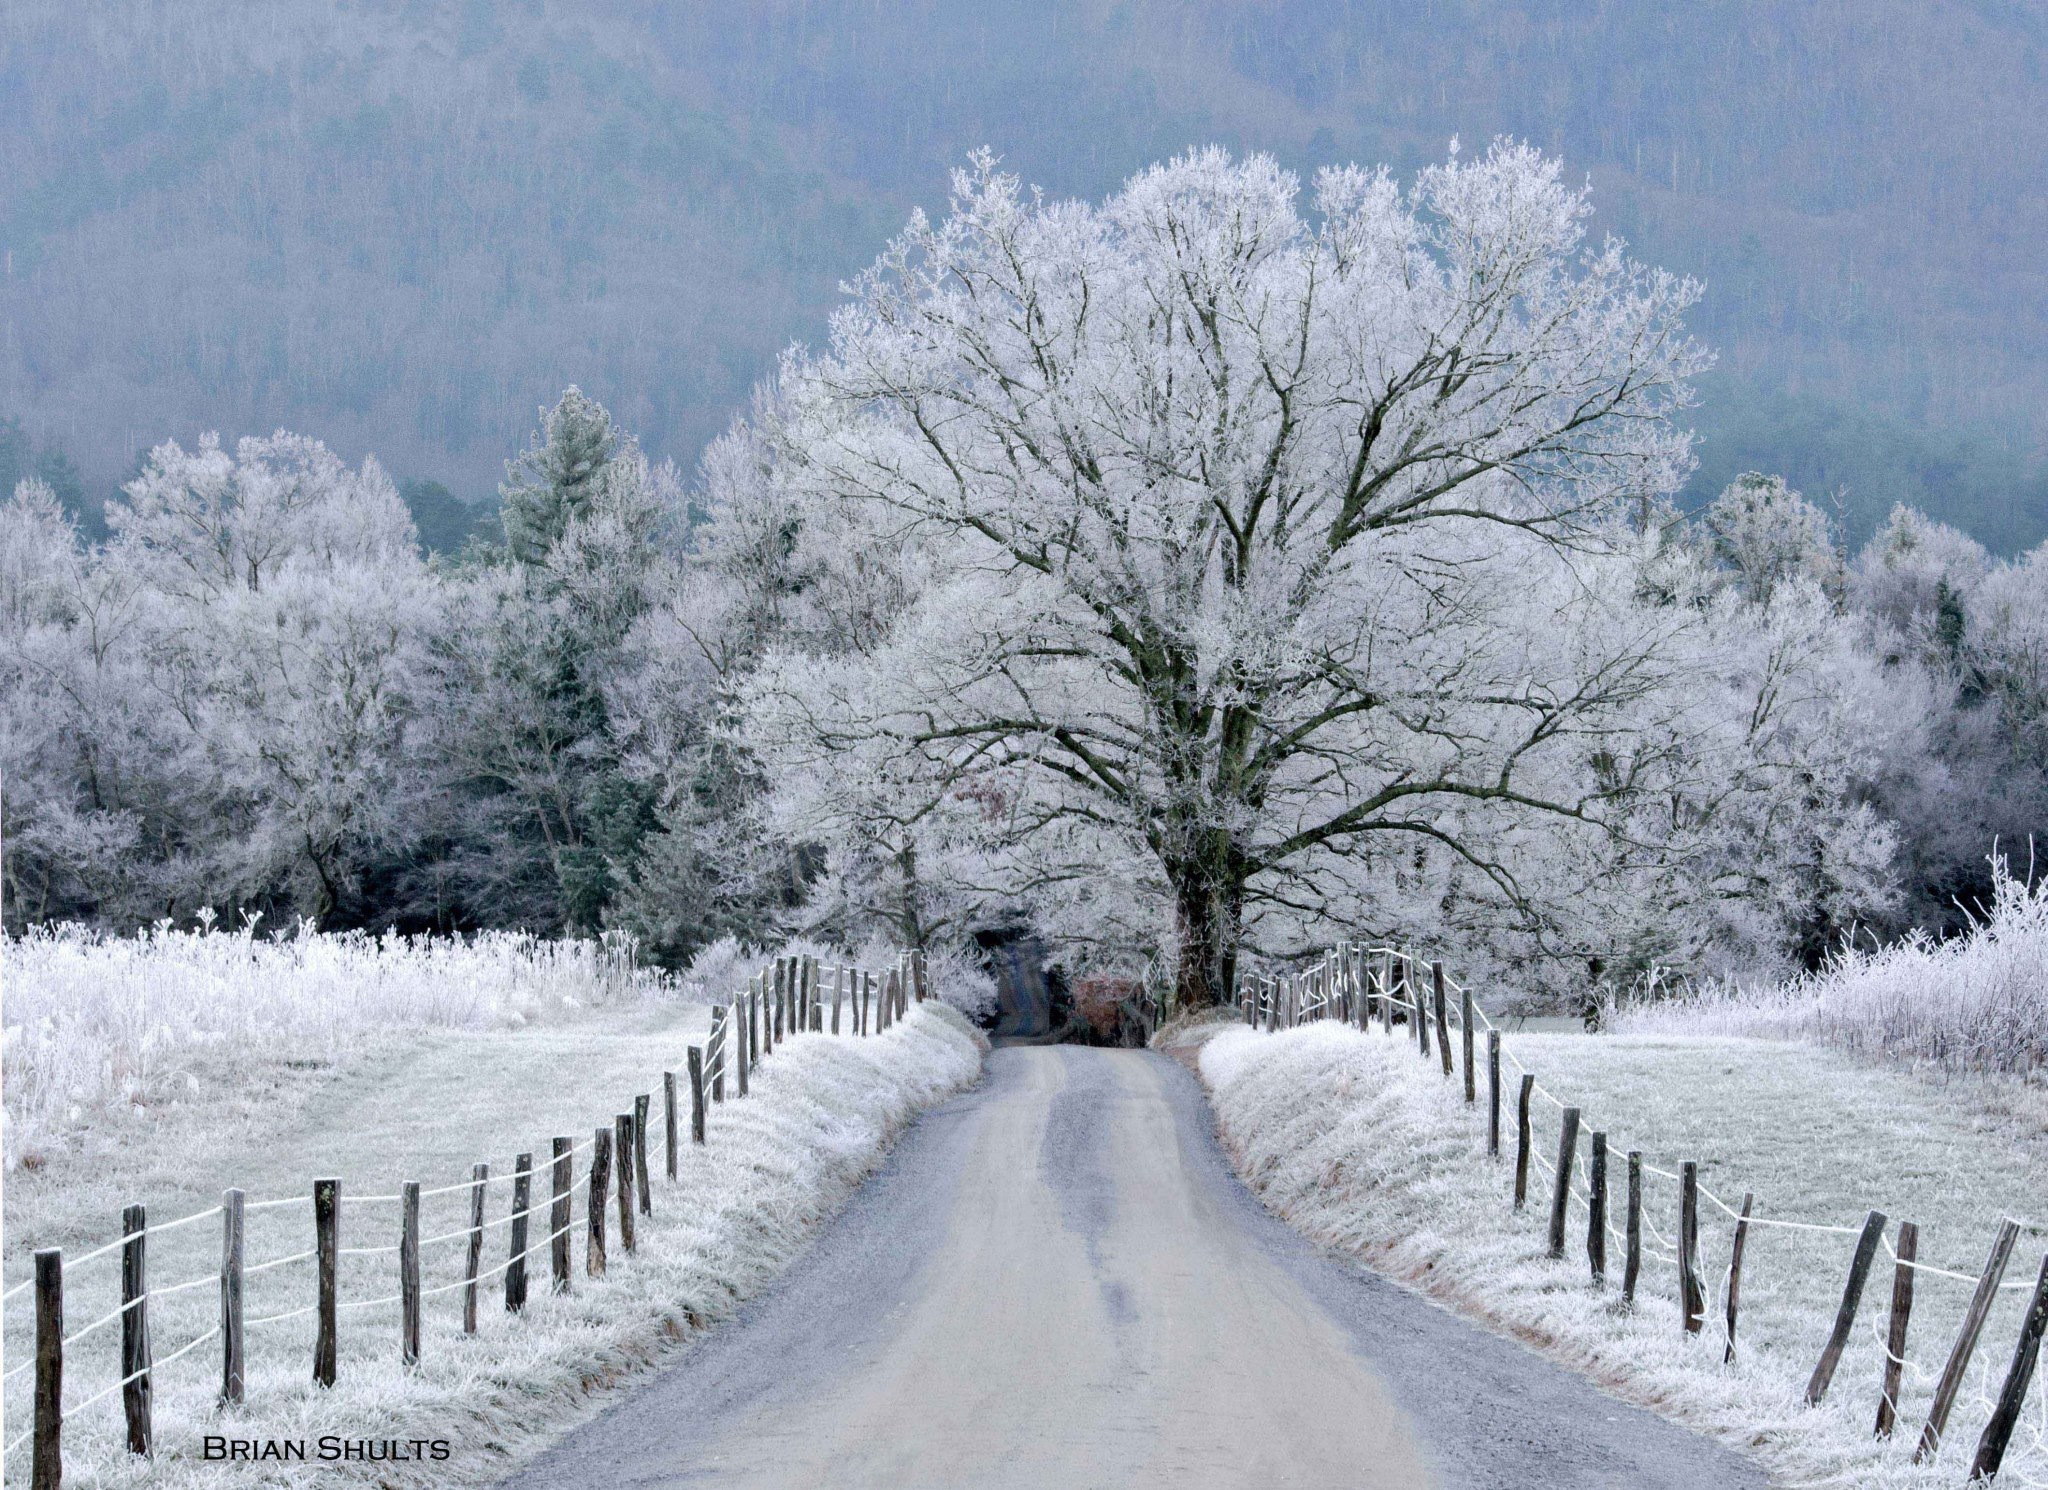 Smoky Mountain Winter Scenes Wallpaper (42+ Images